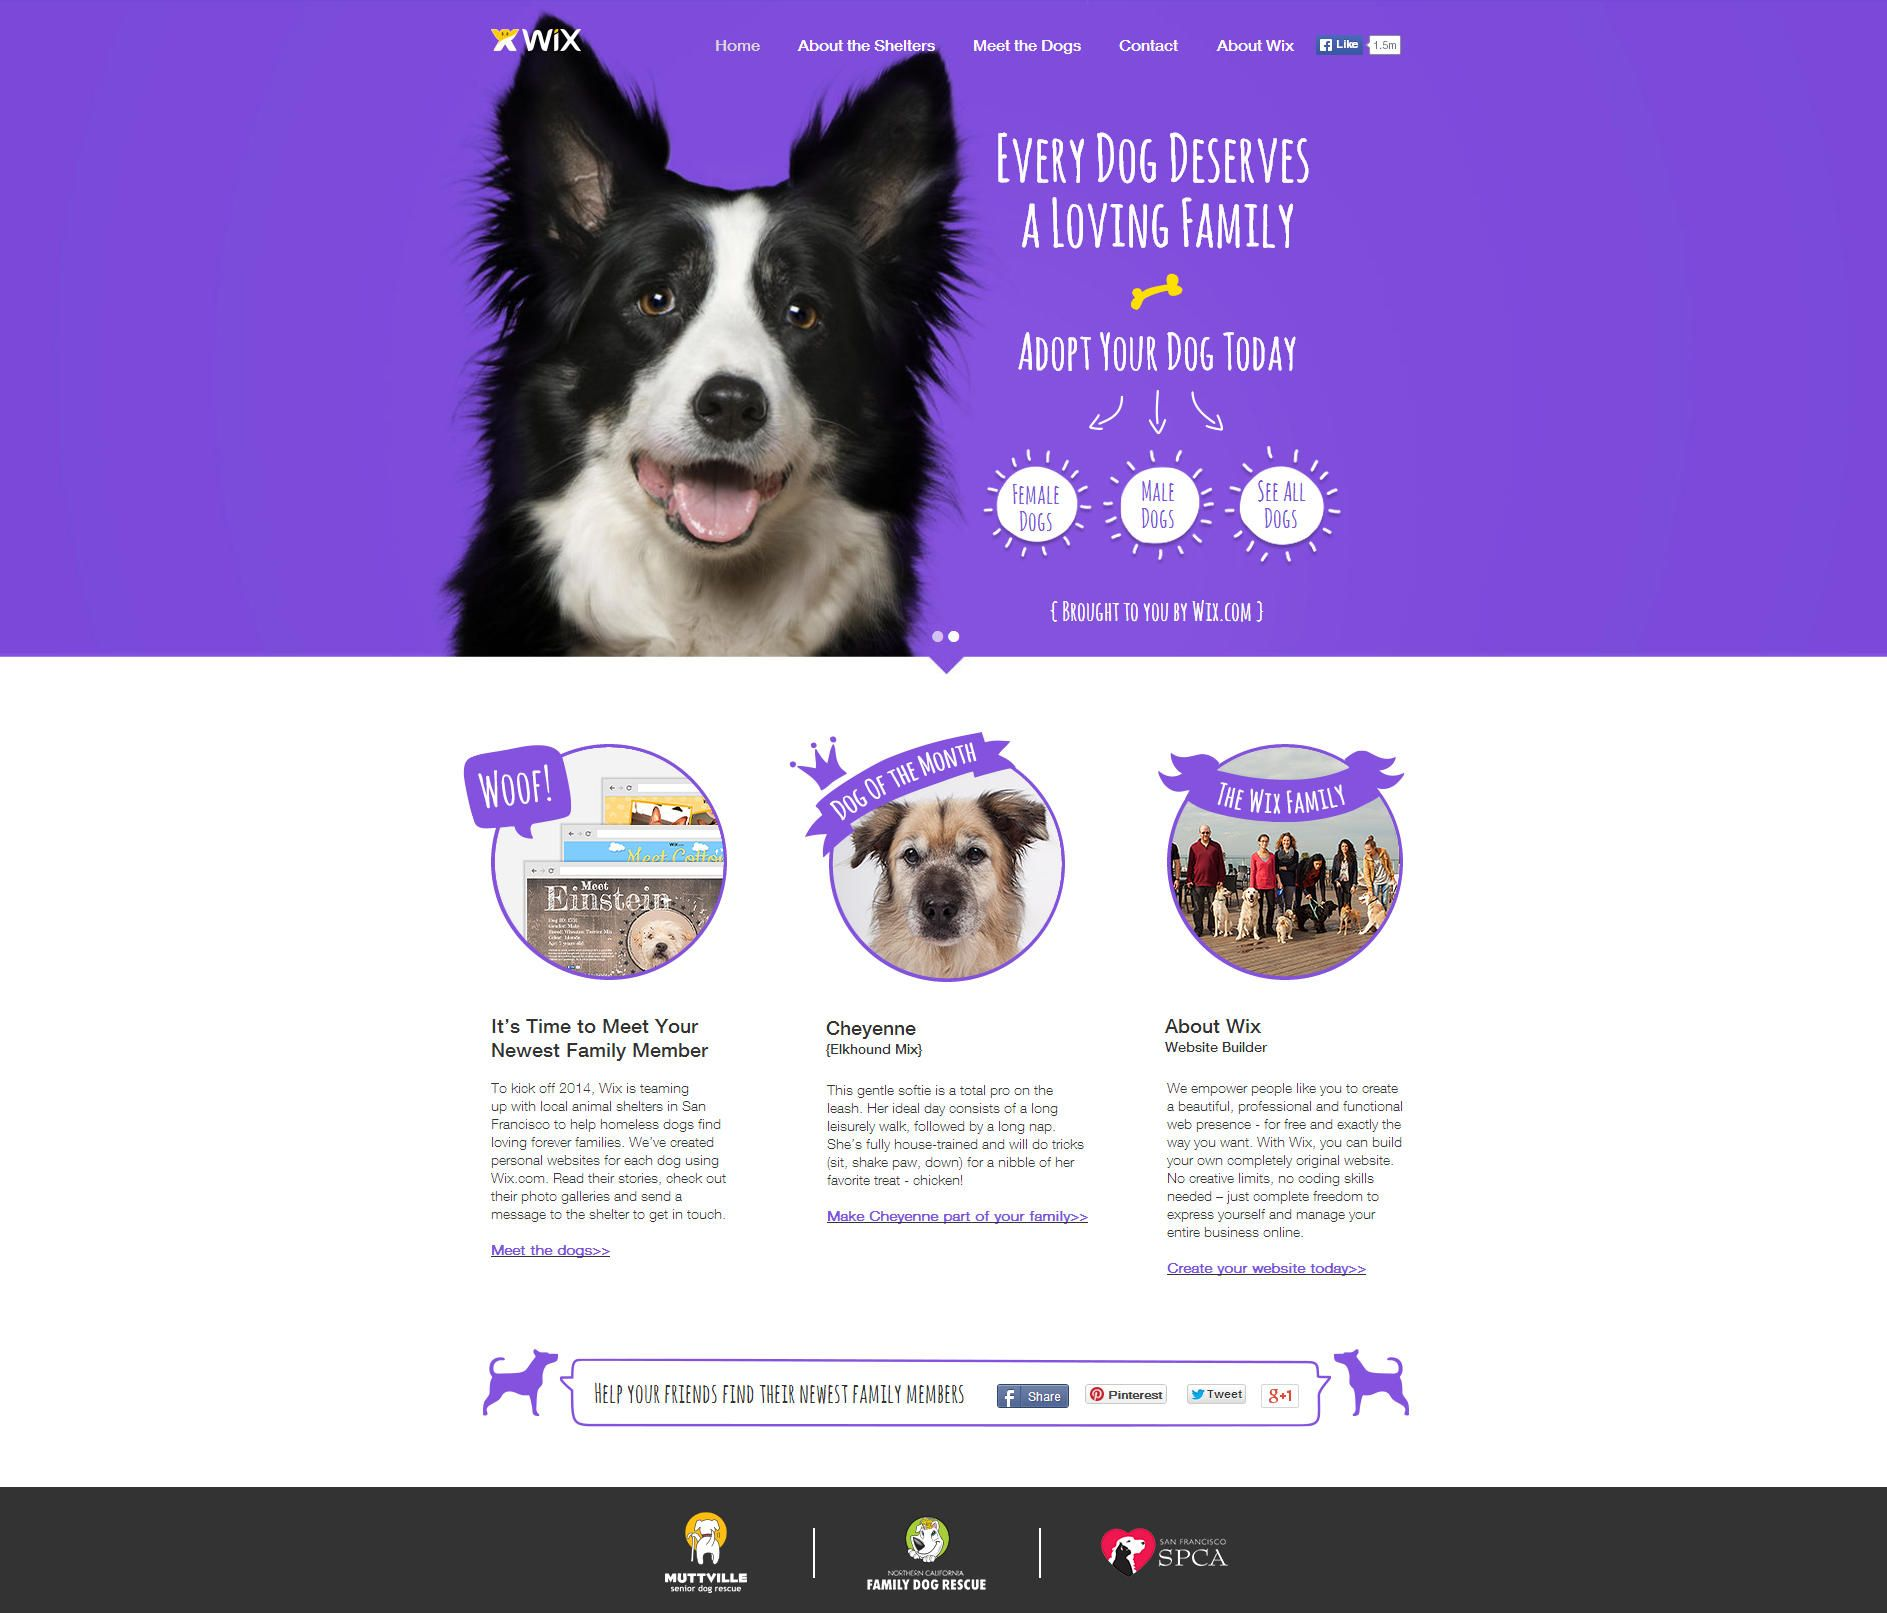 Wix Is Teaming Up With Shelters To Help Dogs Find Loving Homes We X27 Ve Designed Wix Websites For Each Dog Share Their Storie Your Dog Dogs Adoptive Family